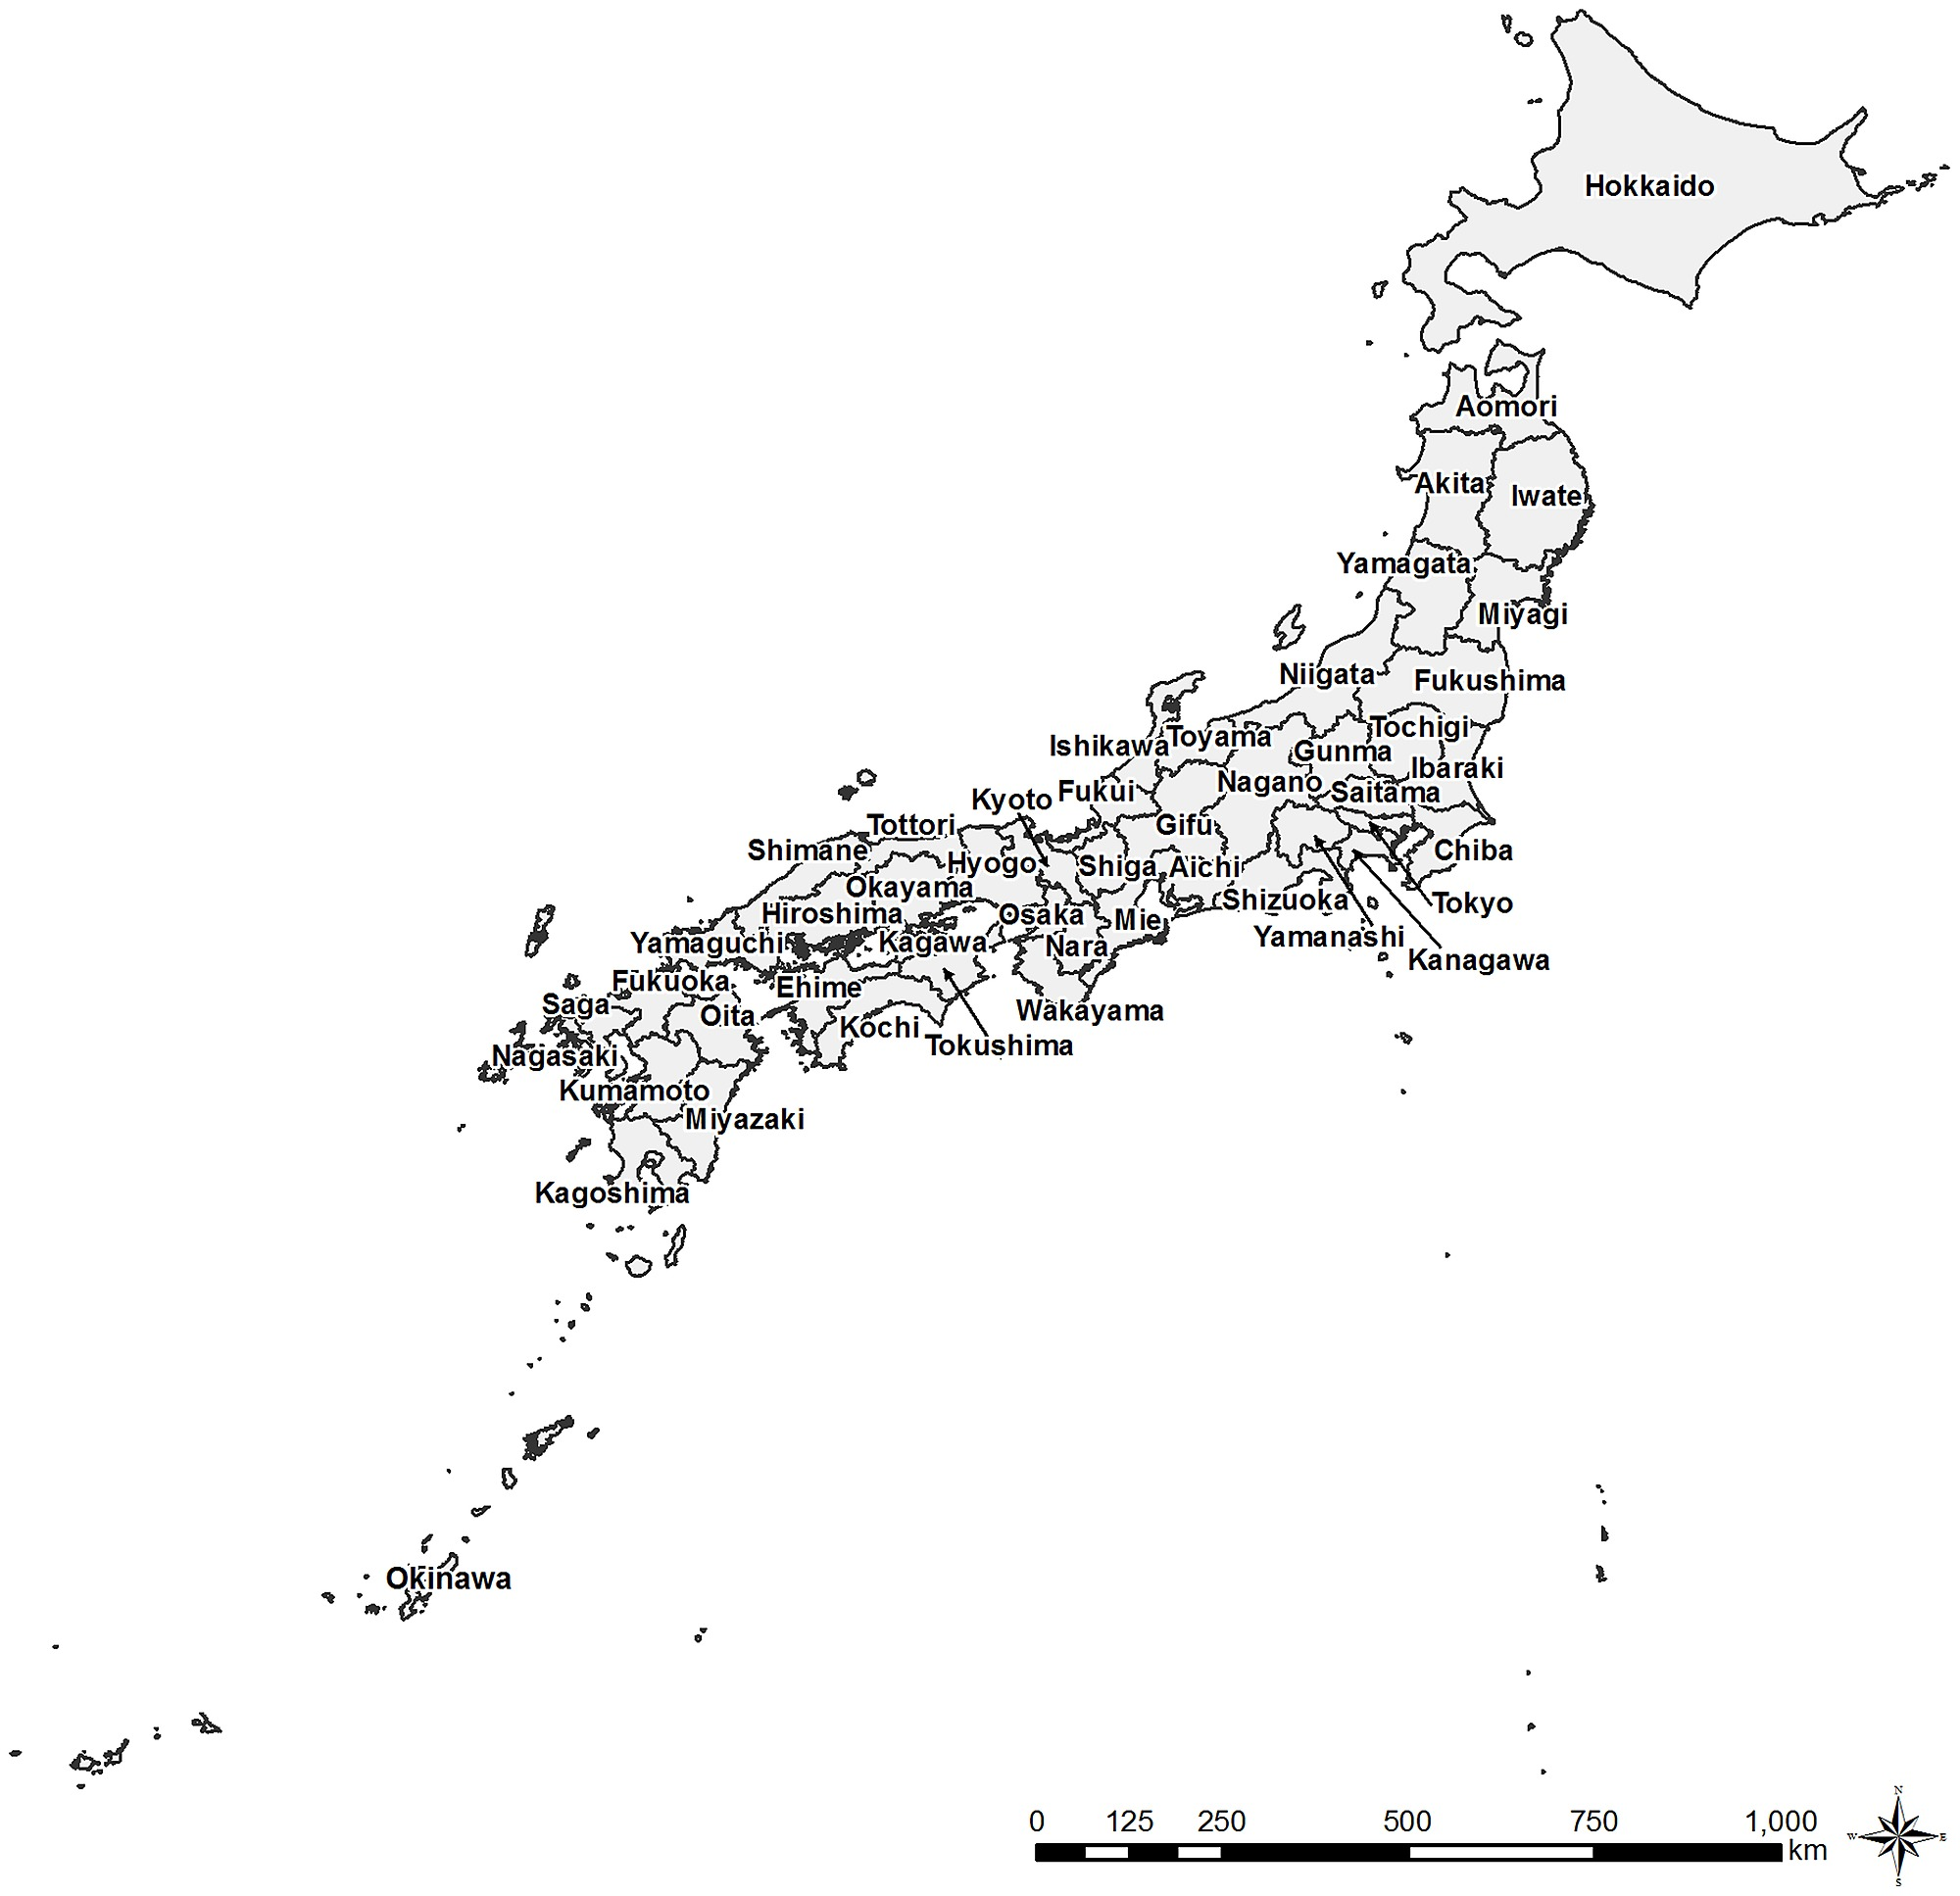 Blank Map Japan Prefectures